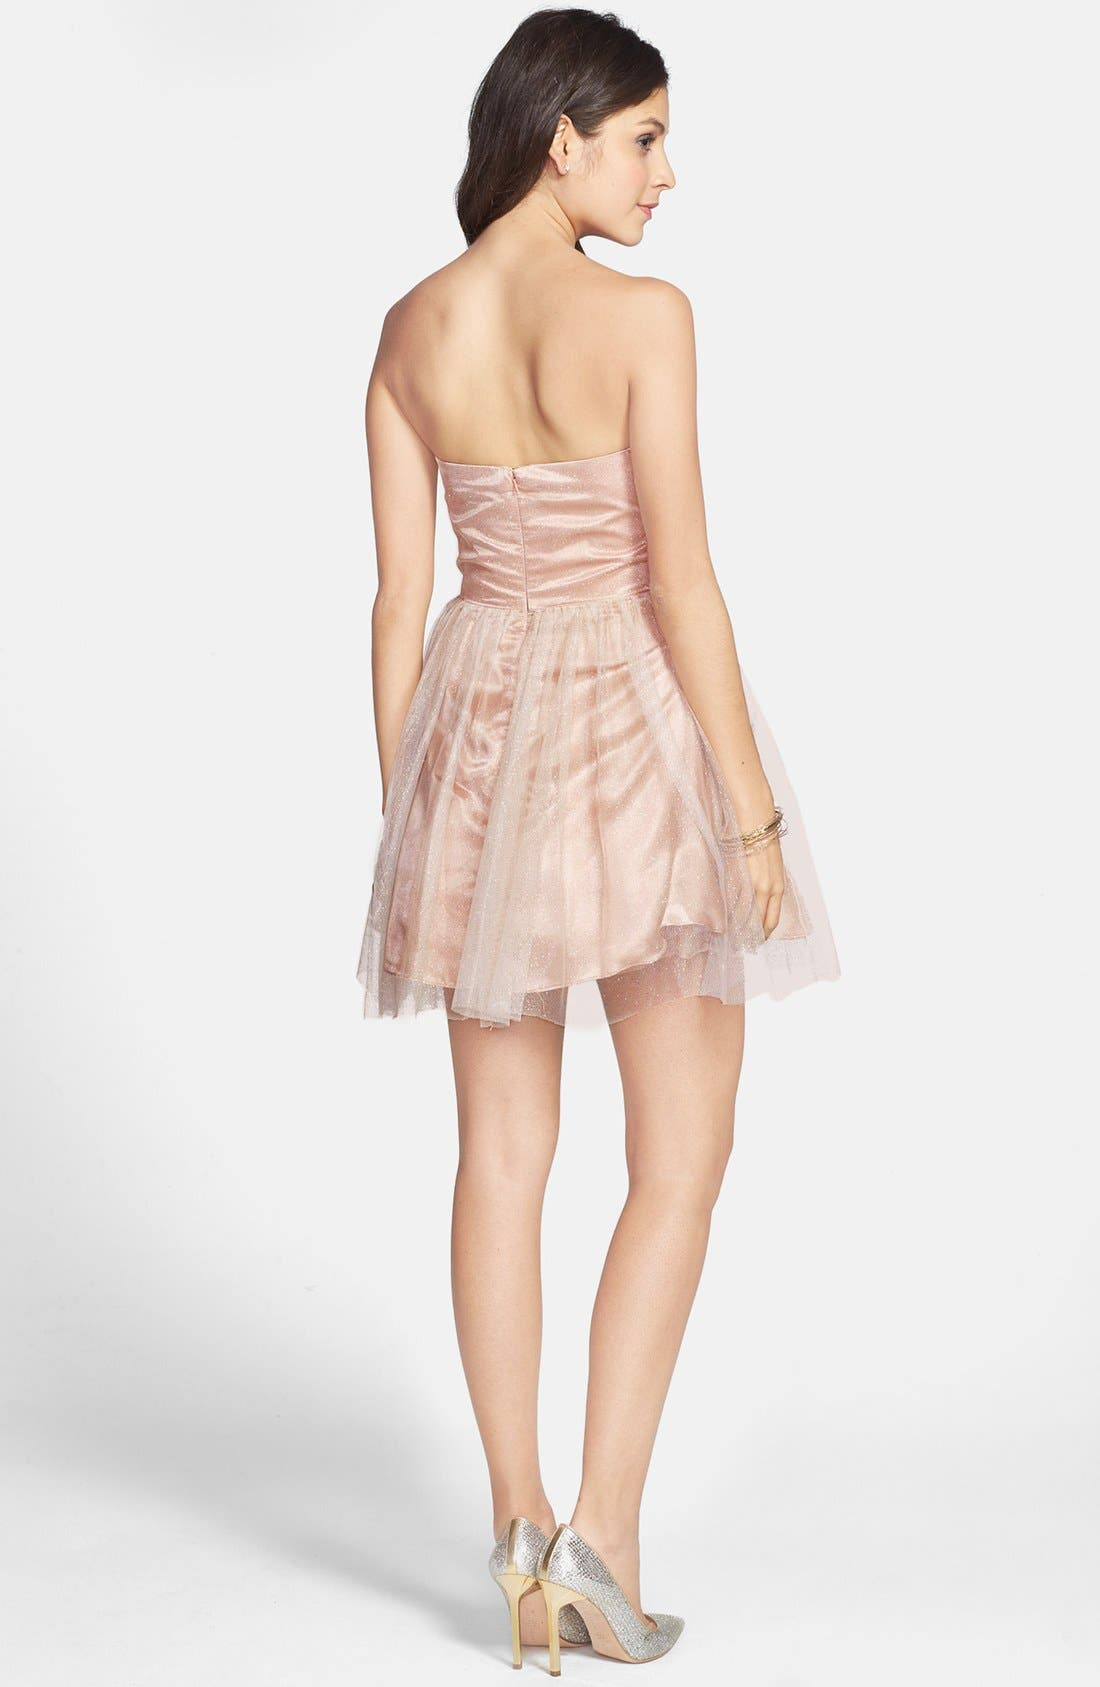 JUMP APPAREL,                             Strapless Dress,                             Alternate thumbnail 3, color,                             650